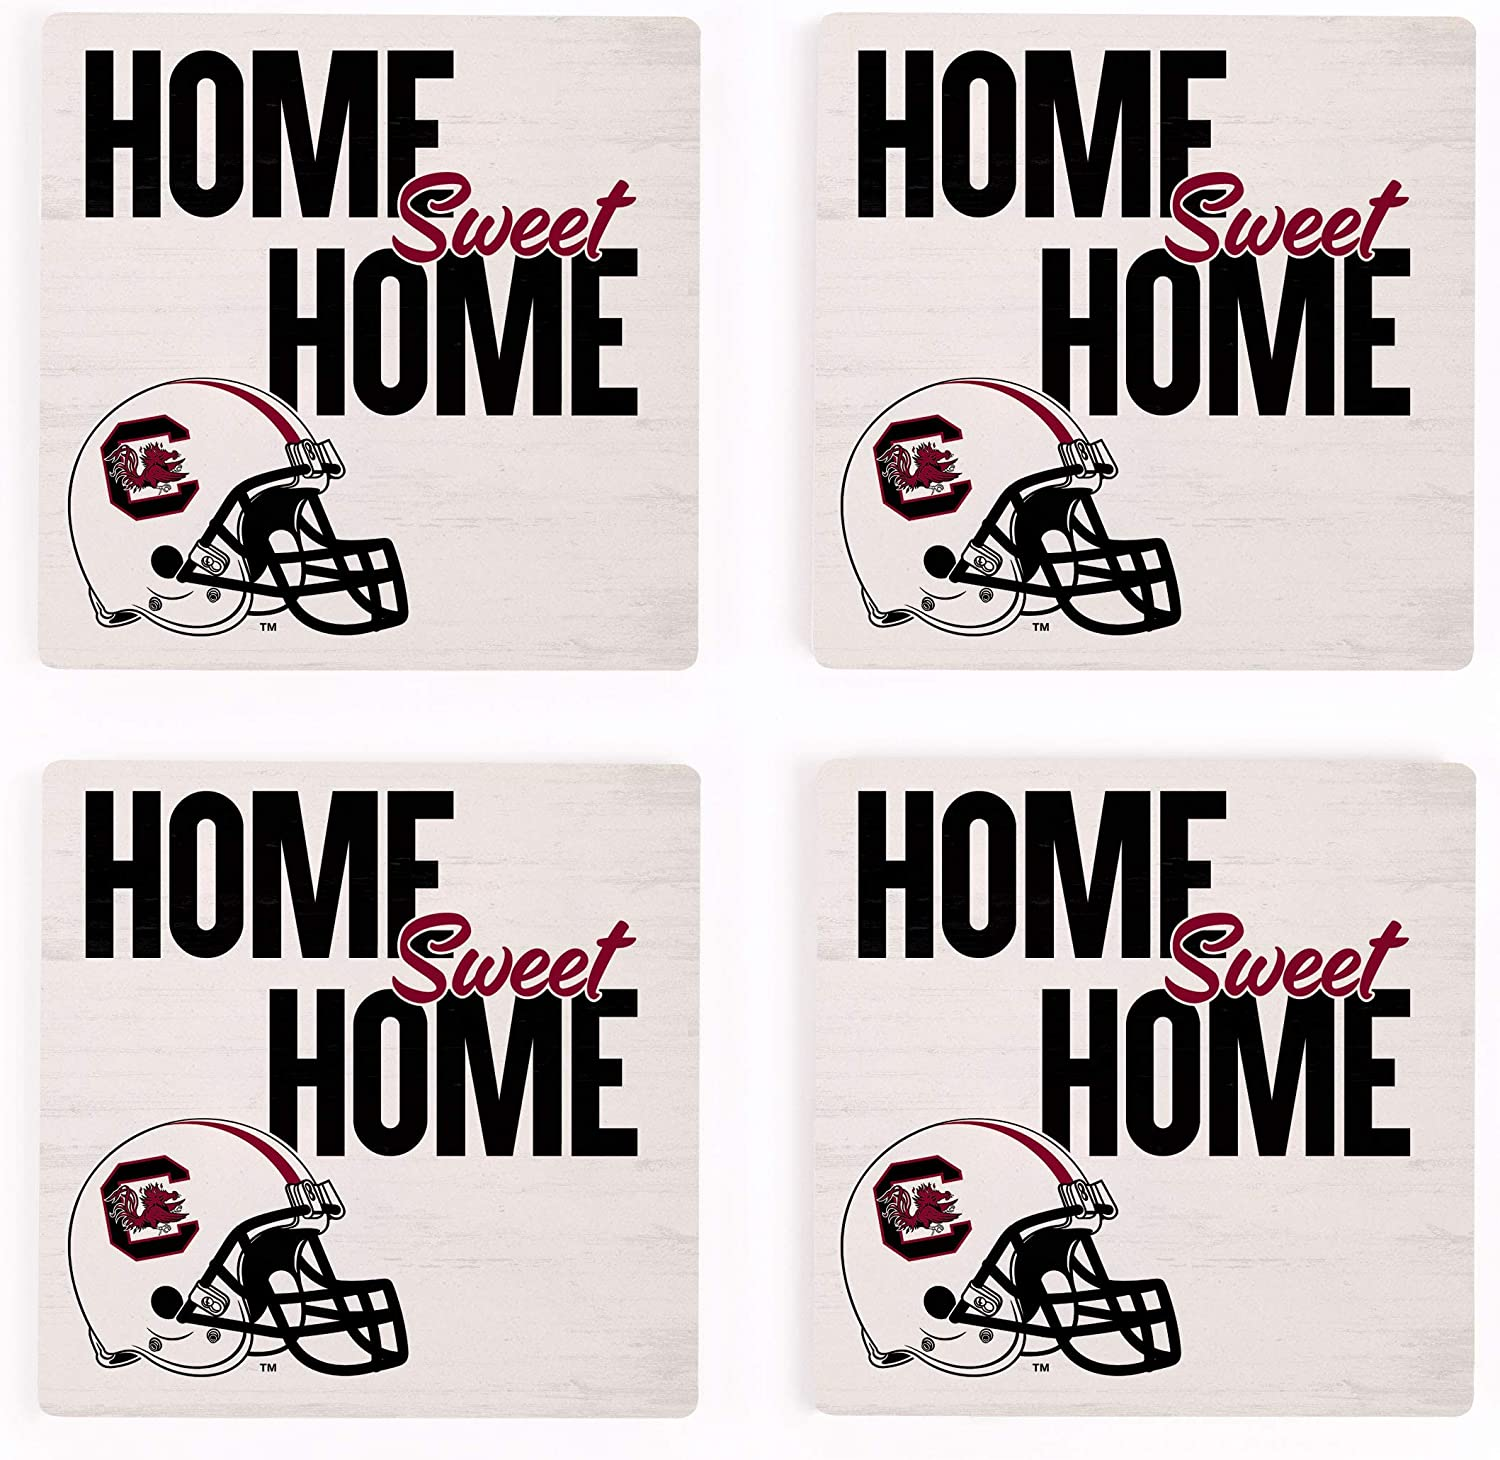 Home Sweet Home University of South Carolina NCAA 4 x 4 Absorbent Ceramic Coasters Pack of 4